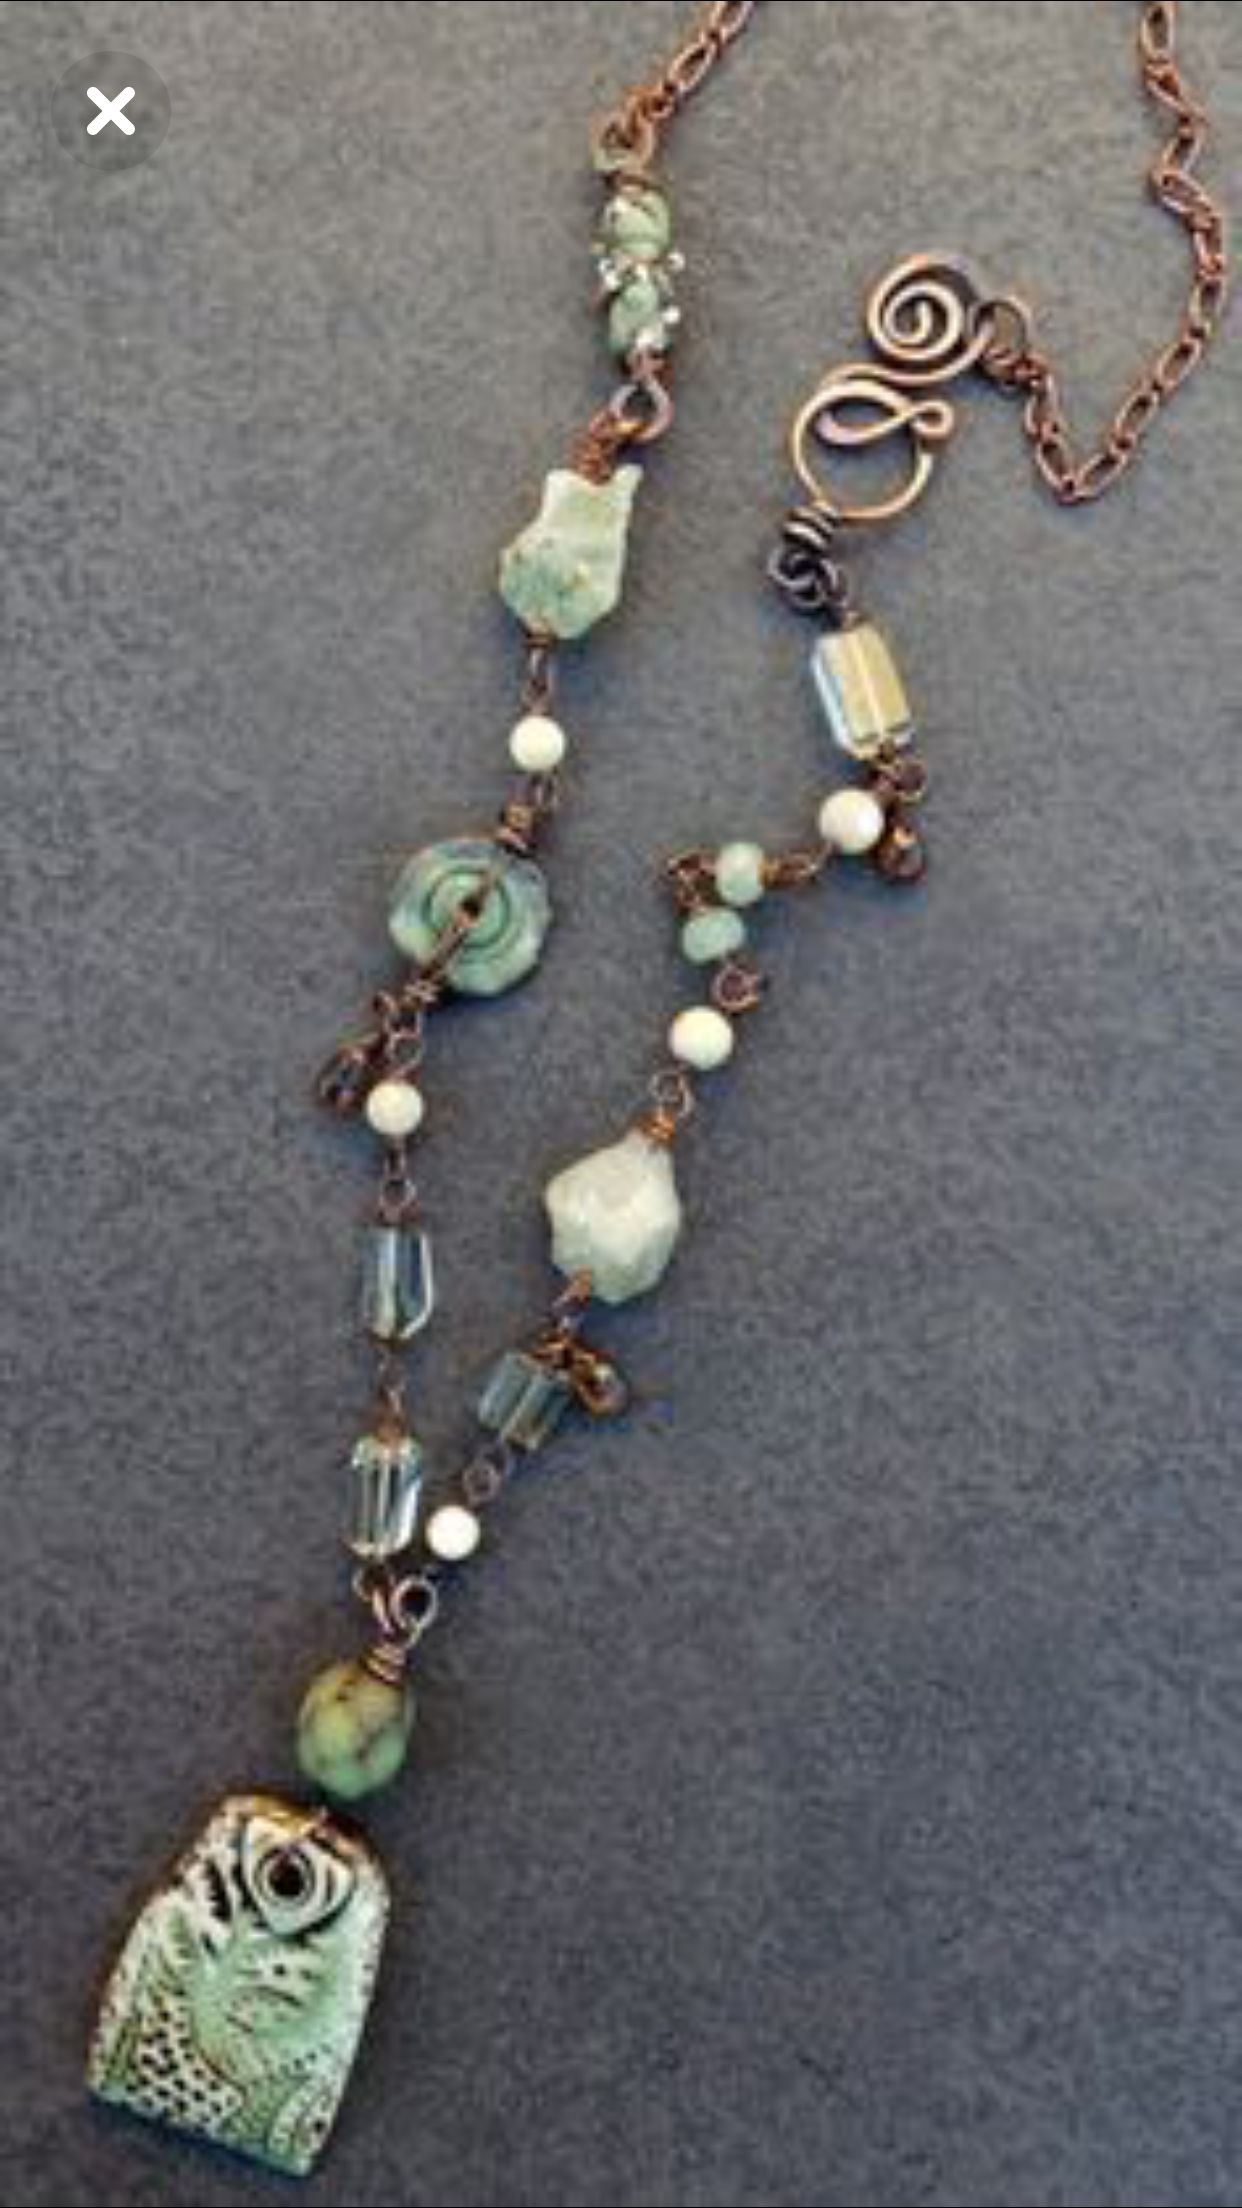 Pin by Sarah Willey on Jewelry Designers   Pinterest   School ...